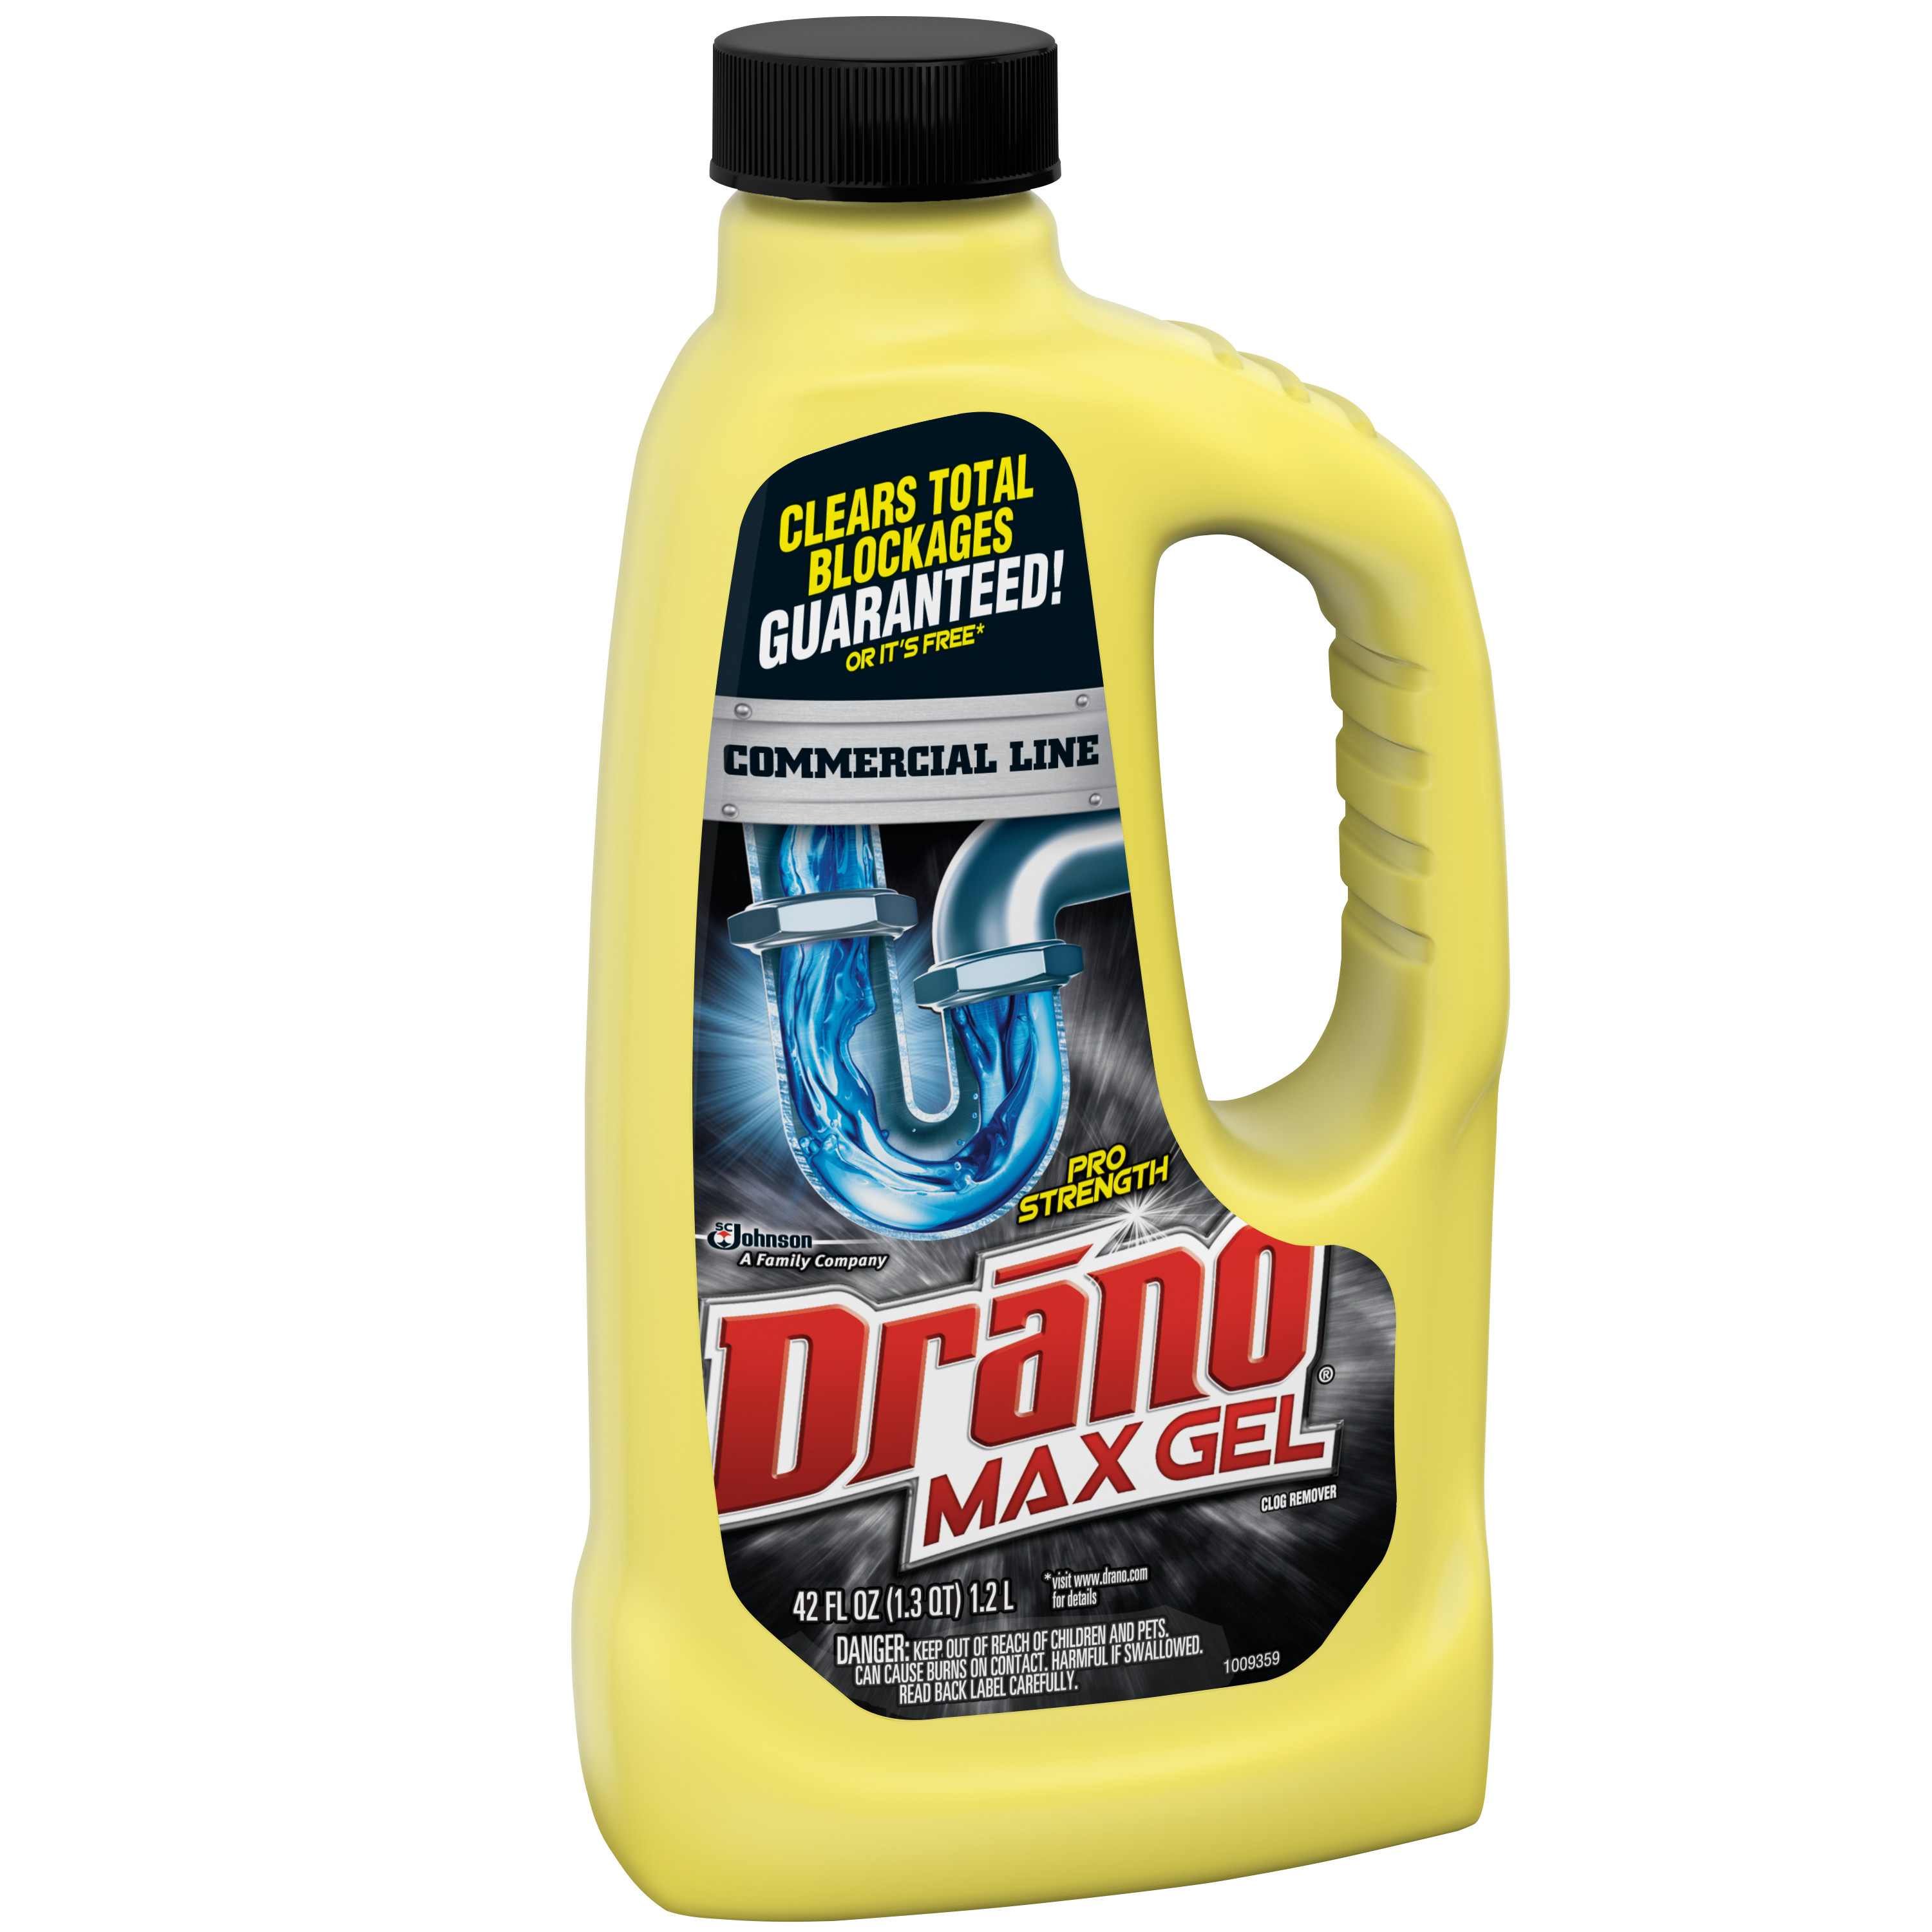 Drano Max Gel Clog Remover Commercial Line 42 Fluid Ounces Walmart throughout dimensions 3000 X 3000